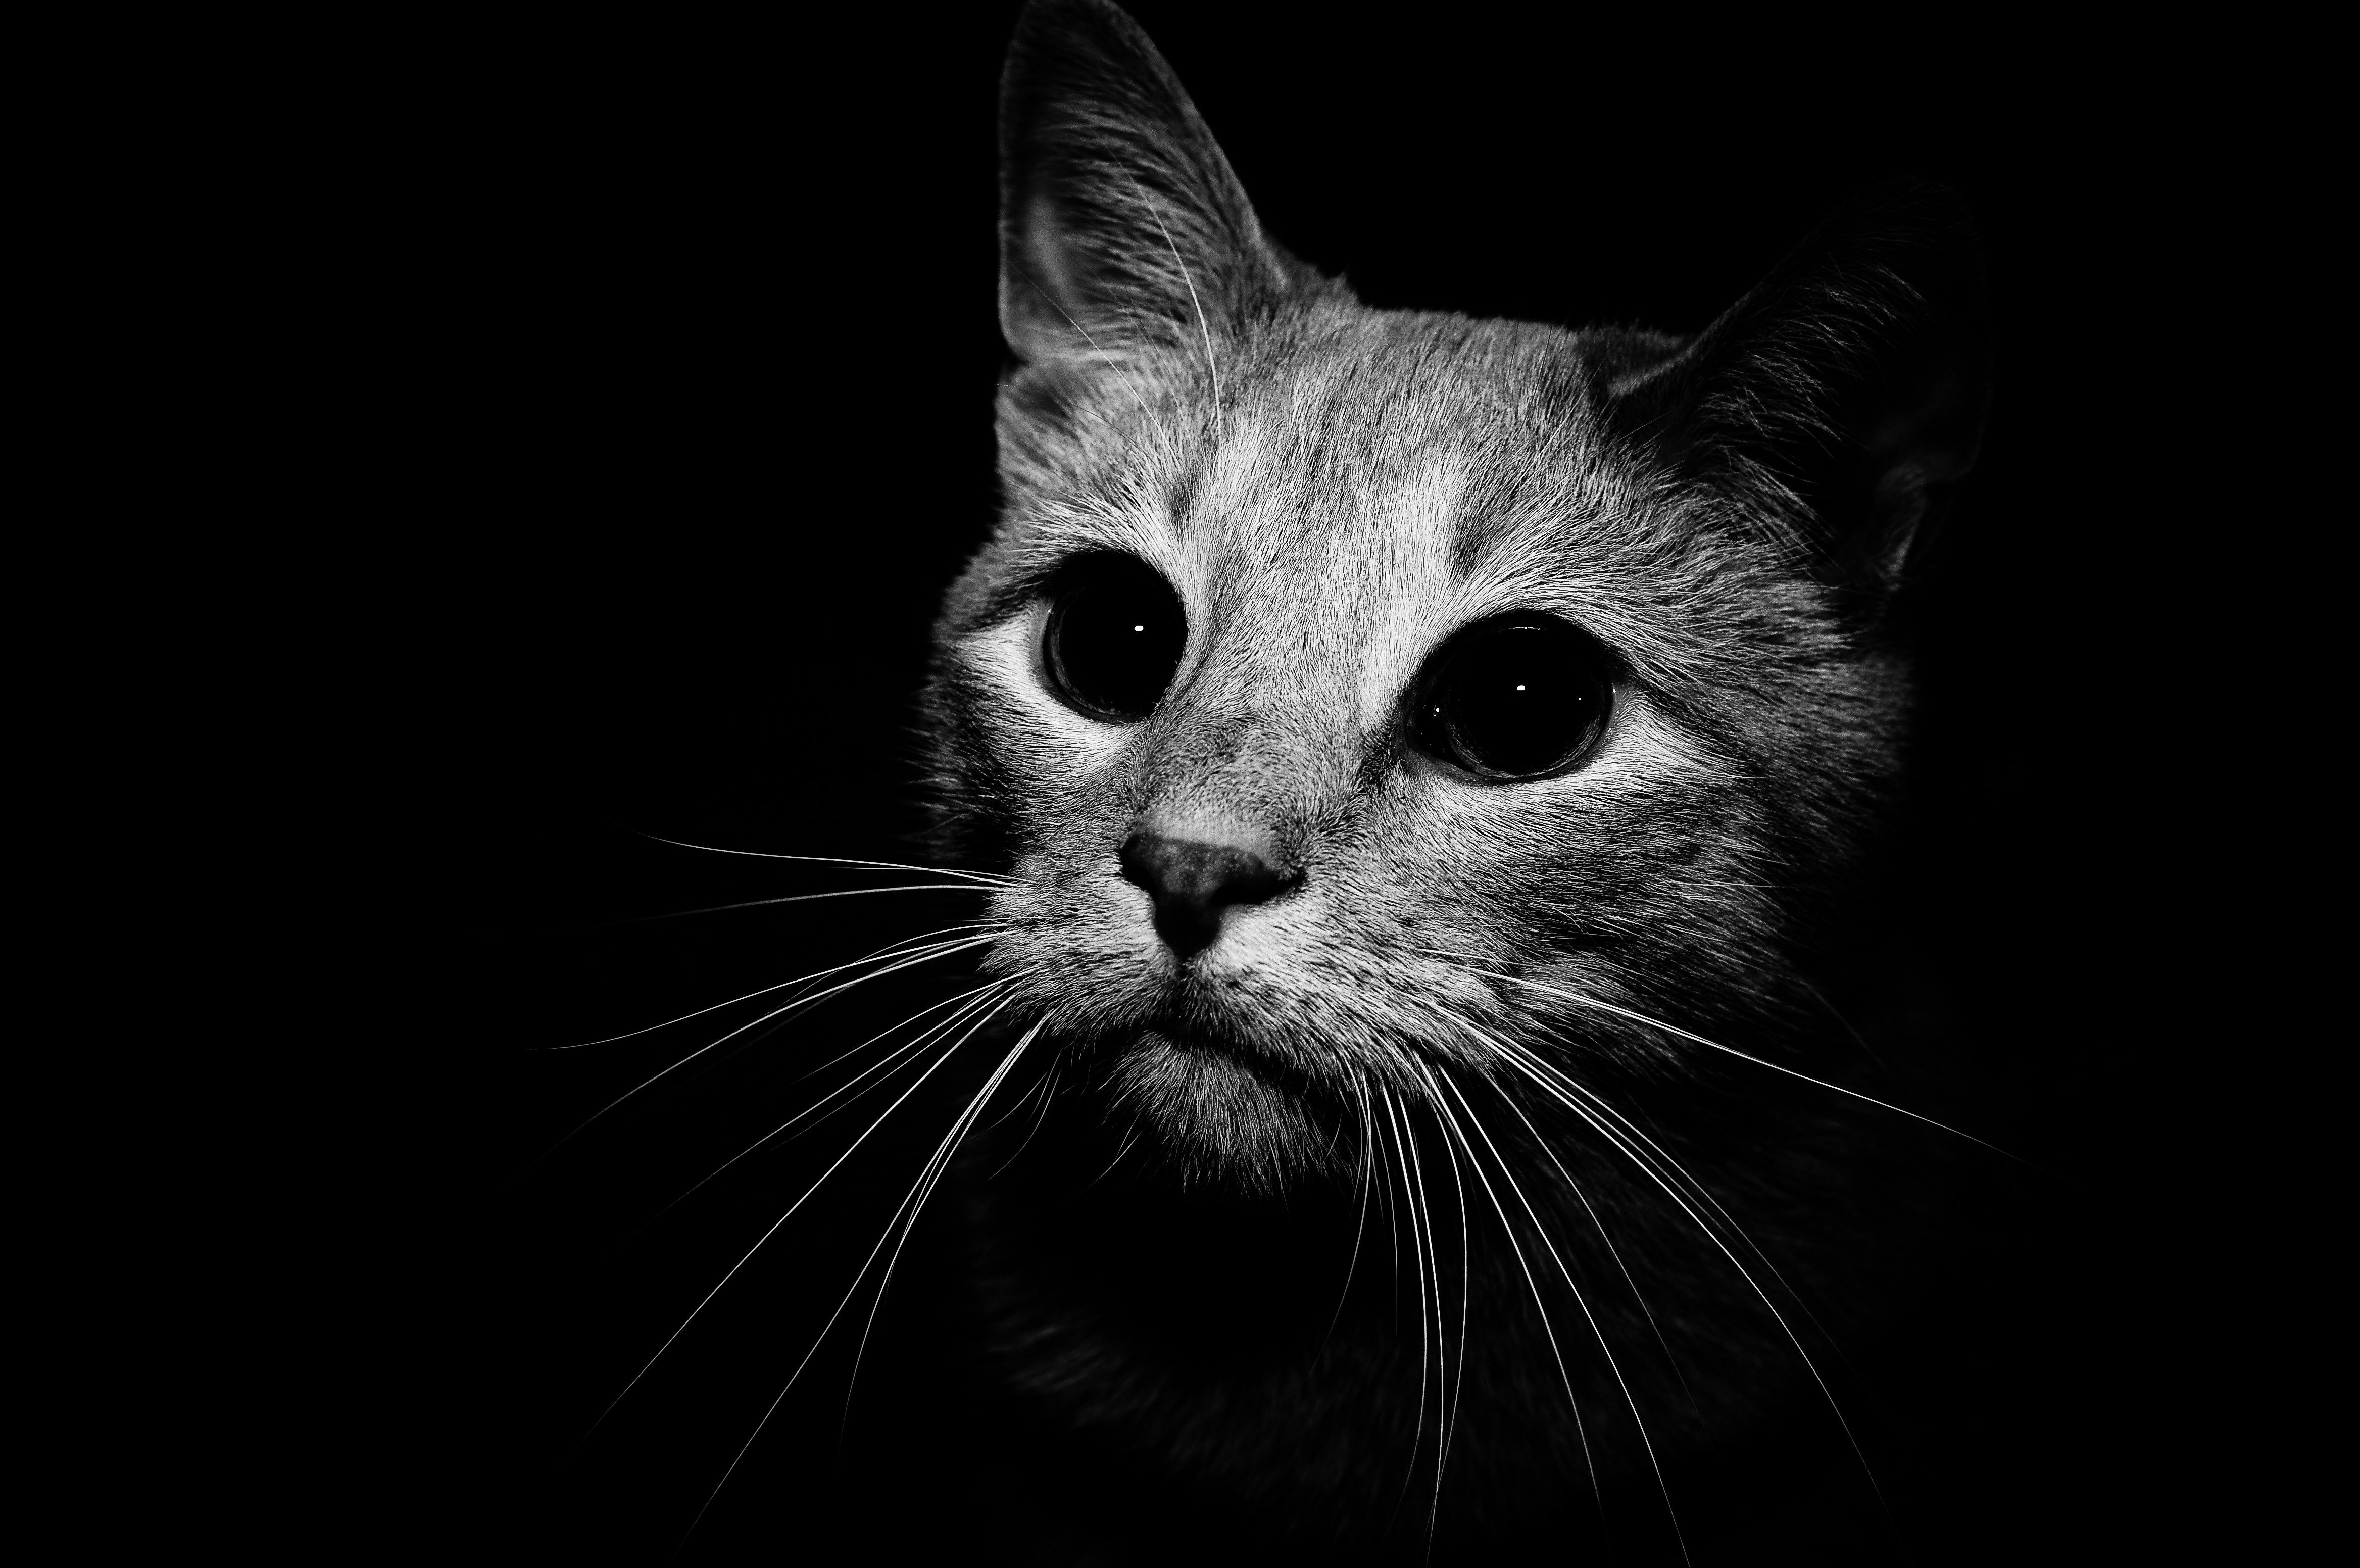 Cat In Black And White Res 4672x3104 / Size1717kb. Views